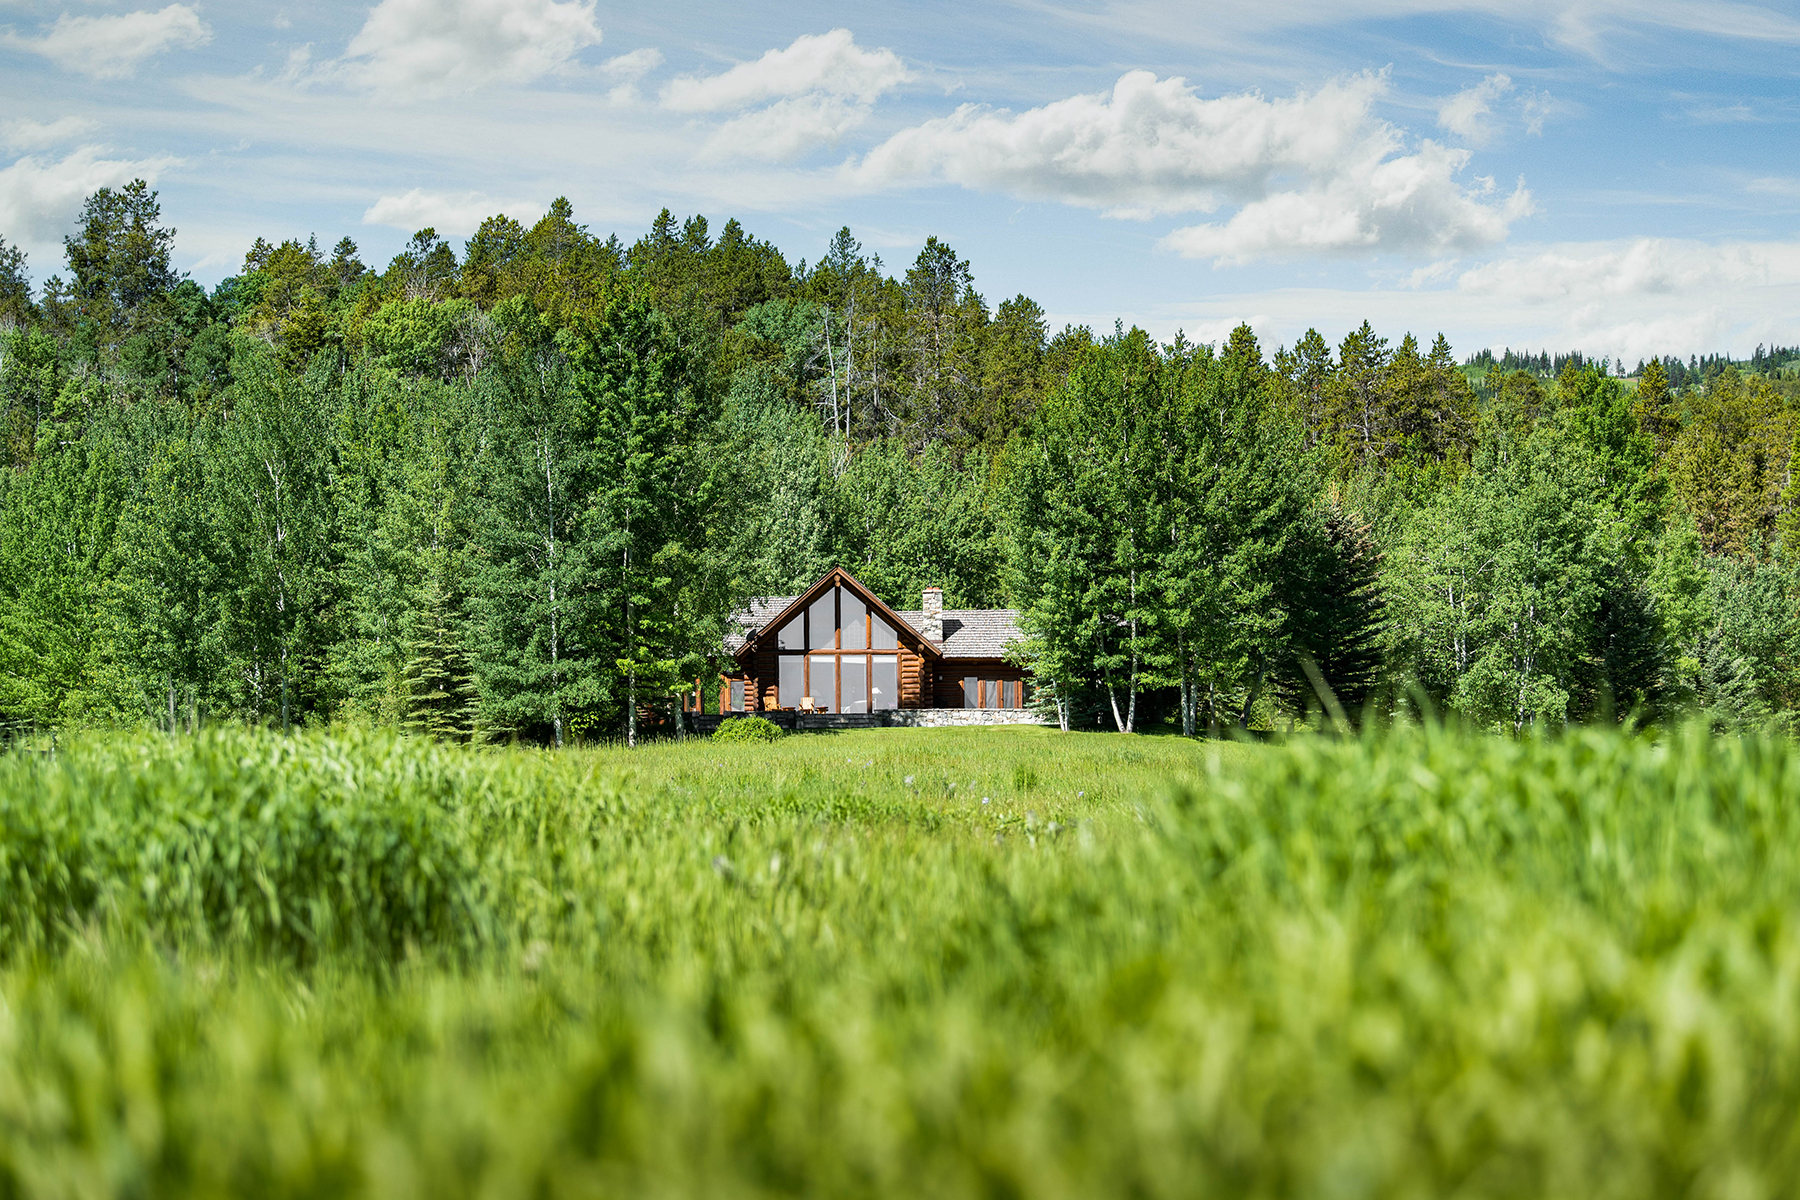 Single Family Homes for Sale at Private Acreage and Custom Log Home 8750 S 4500 W Victor, Idaho 83455 United States